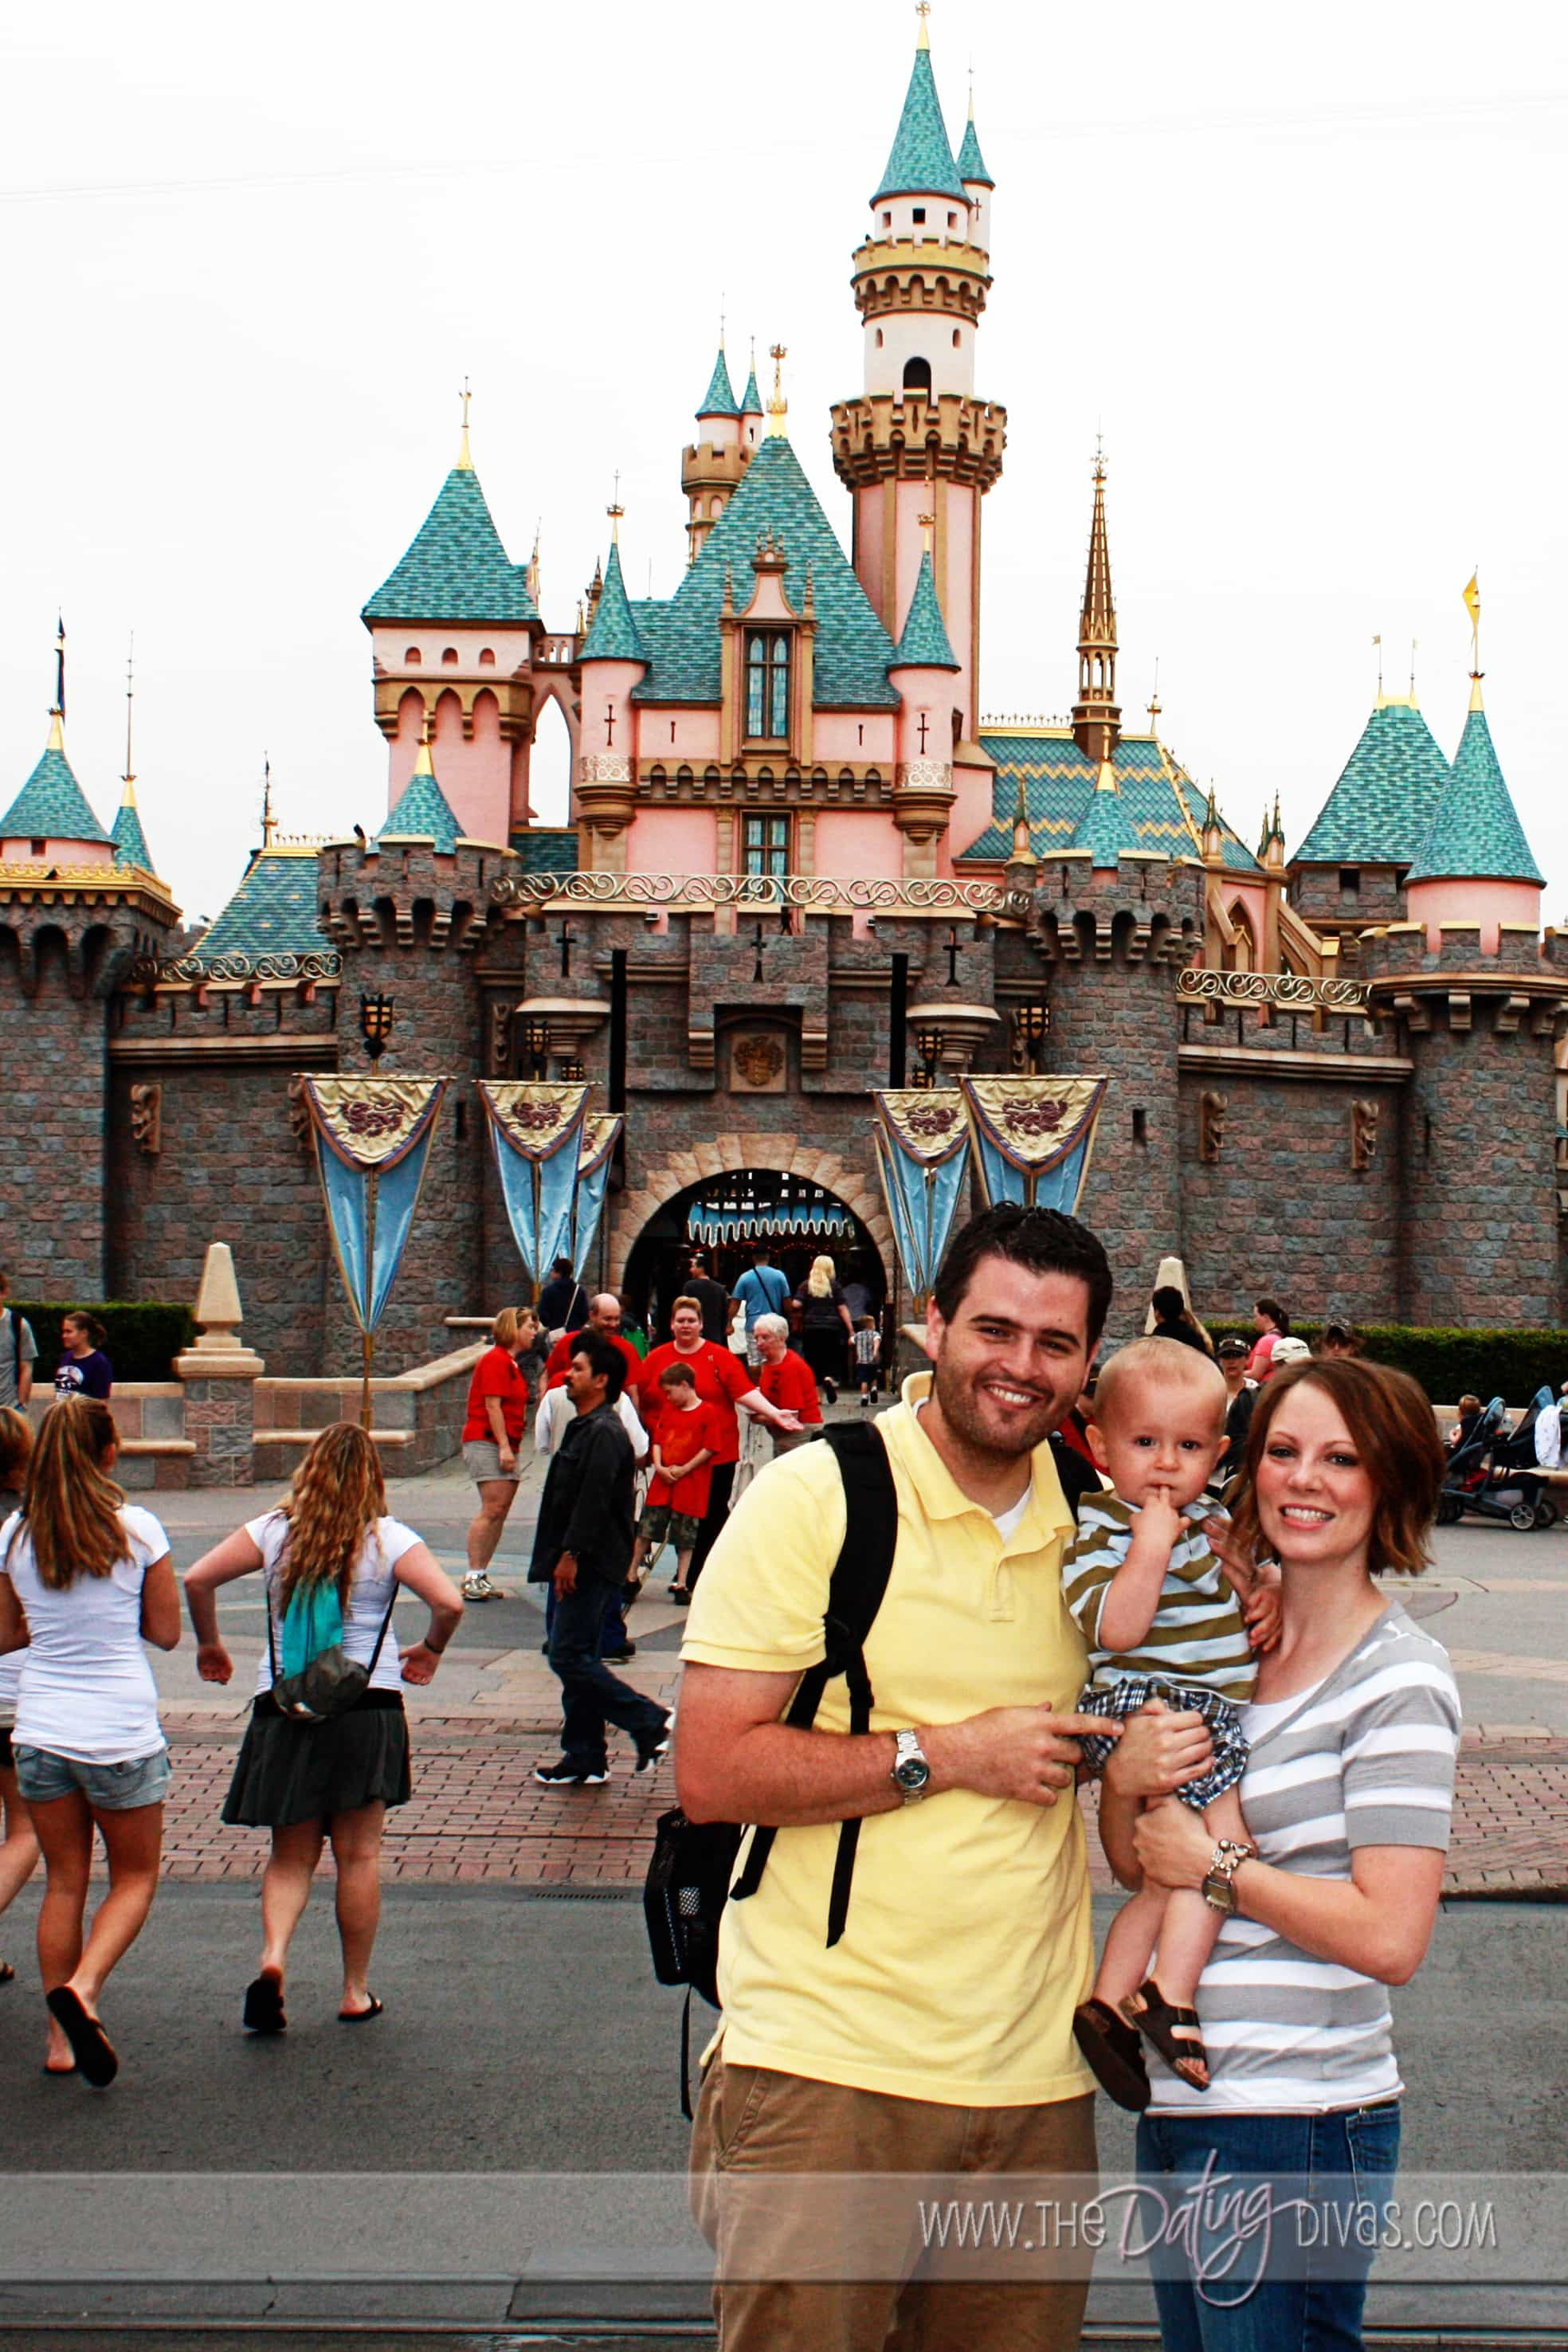 Finding Disneyland Deals for Your Next Family Trip